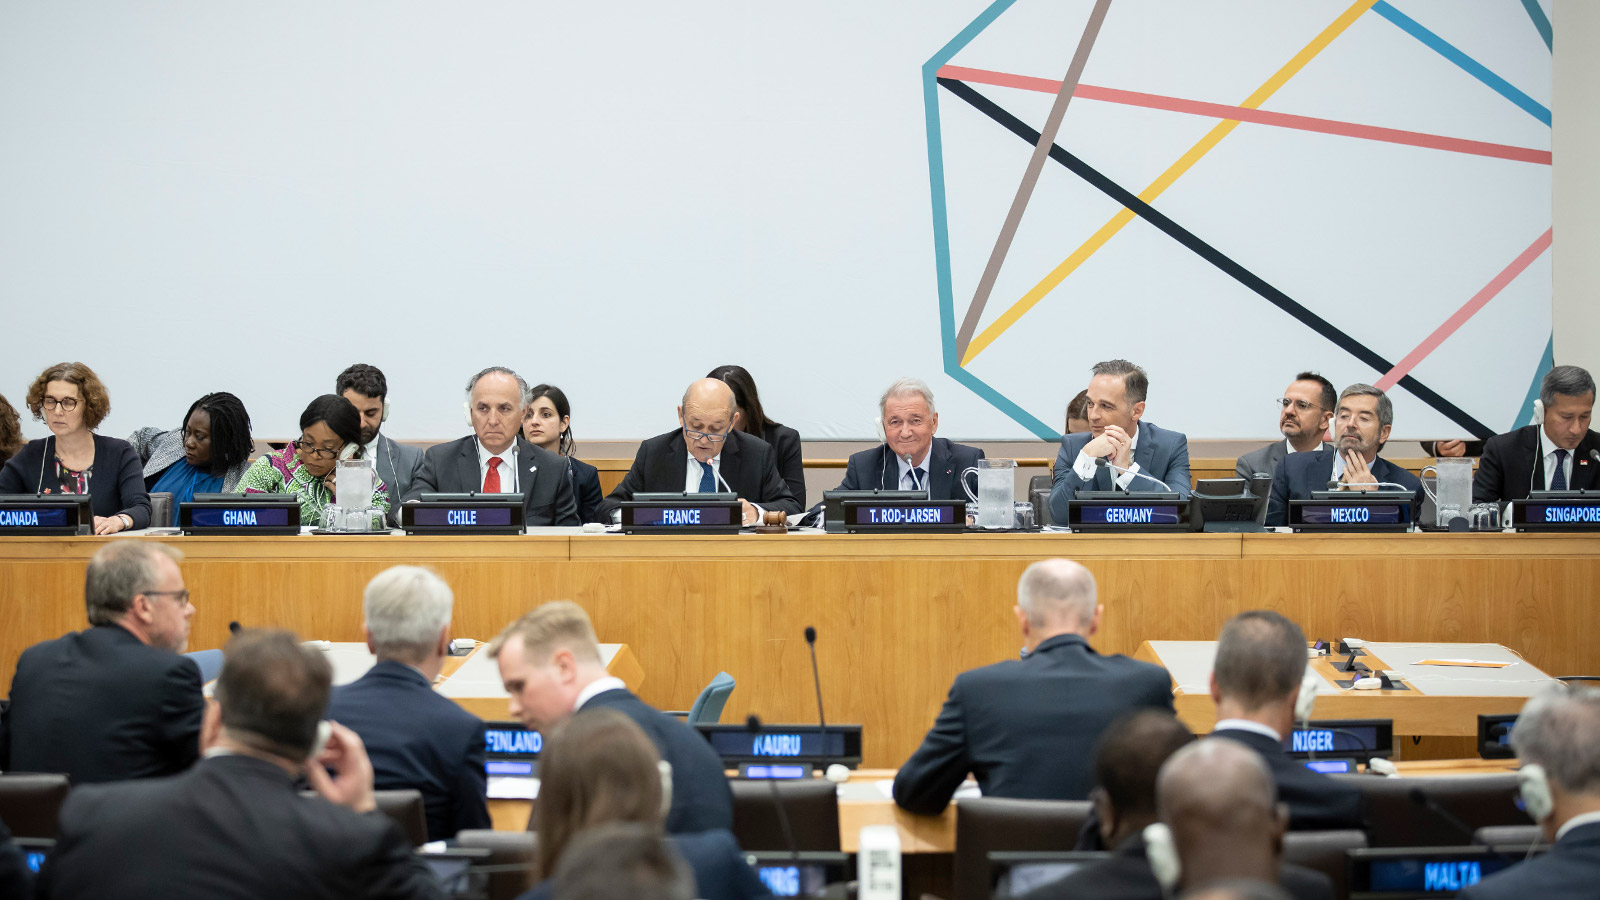 The picture shows the Foreign Ministers of Canada, Ghana, Chile, France, Germany, Mexico and Singapore as well as a moderator sitting in a row to chair a ministerial meeting at the UN Headquarters in New York. Parts of the audience can be seen from the back.